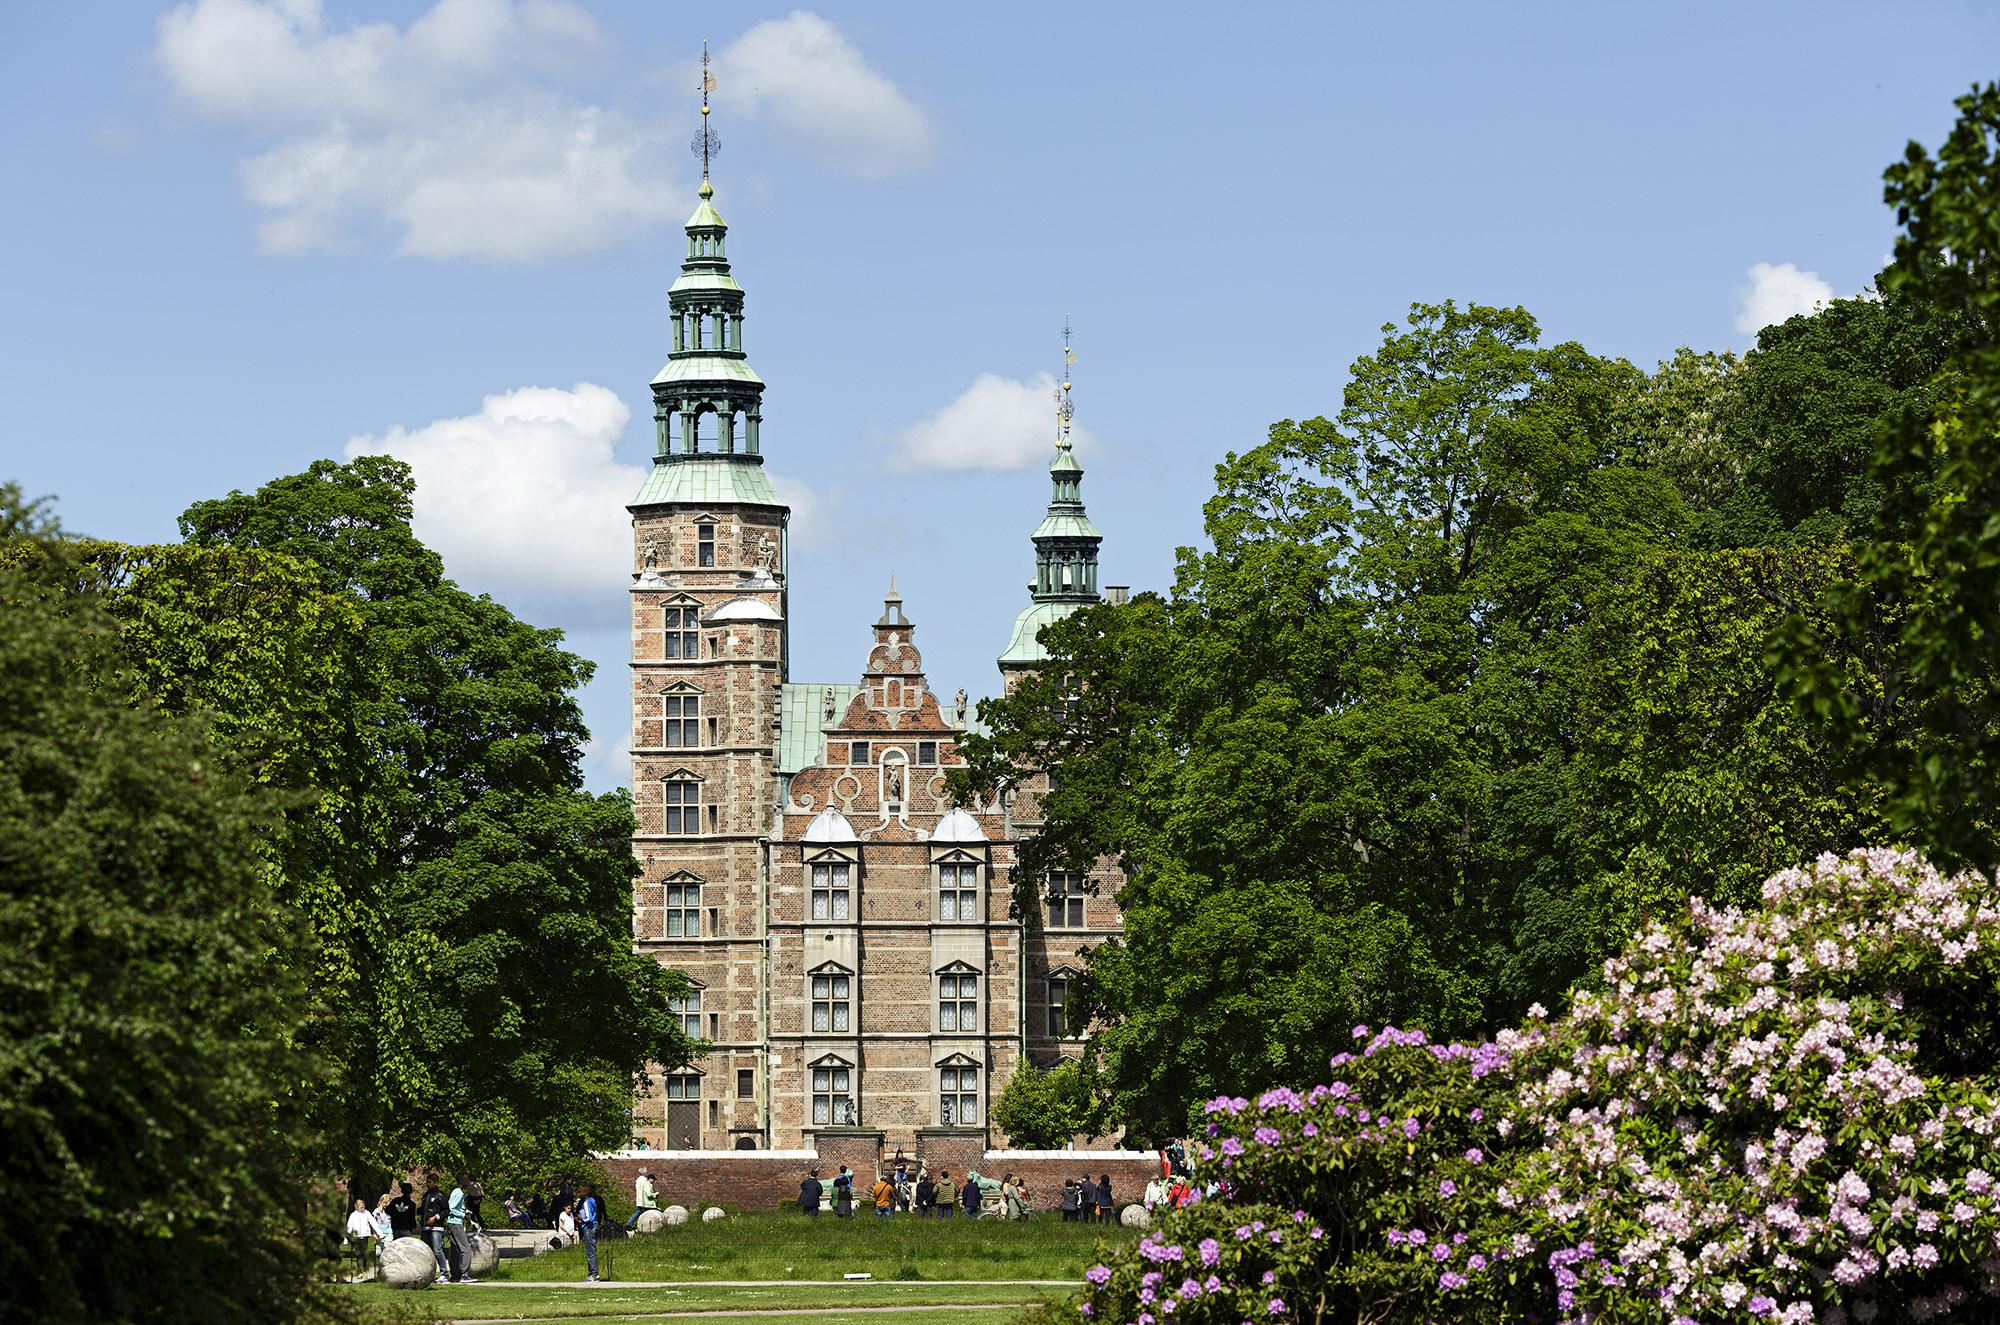 Rosenborg Castle is located in the King's Garden, which gives the site the most beautiful surroundings. – © Peter Nørby